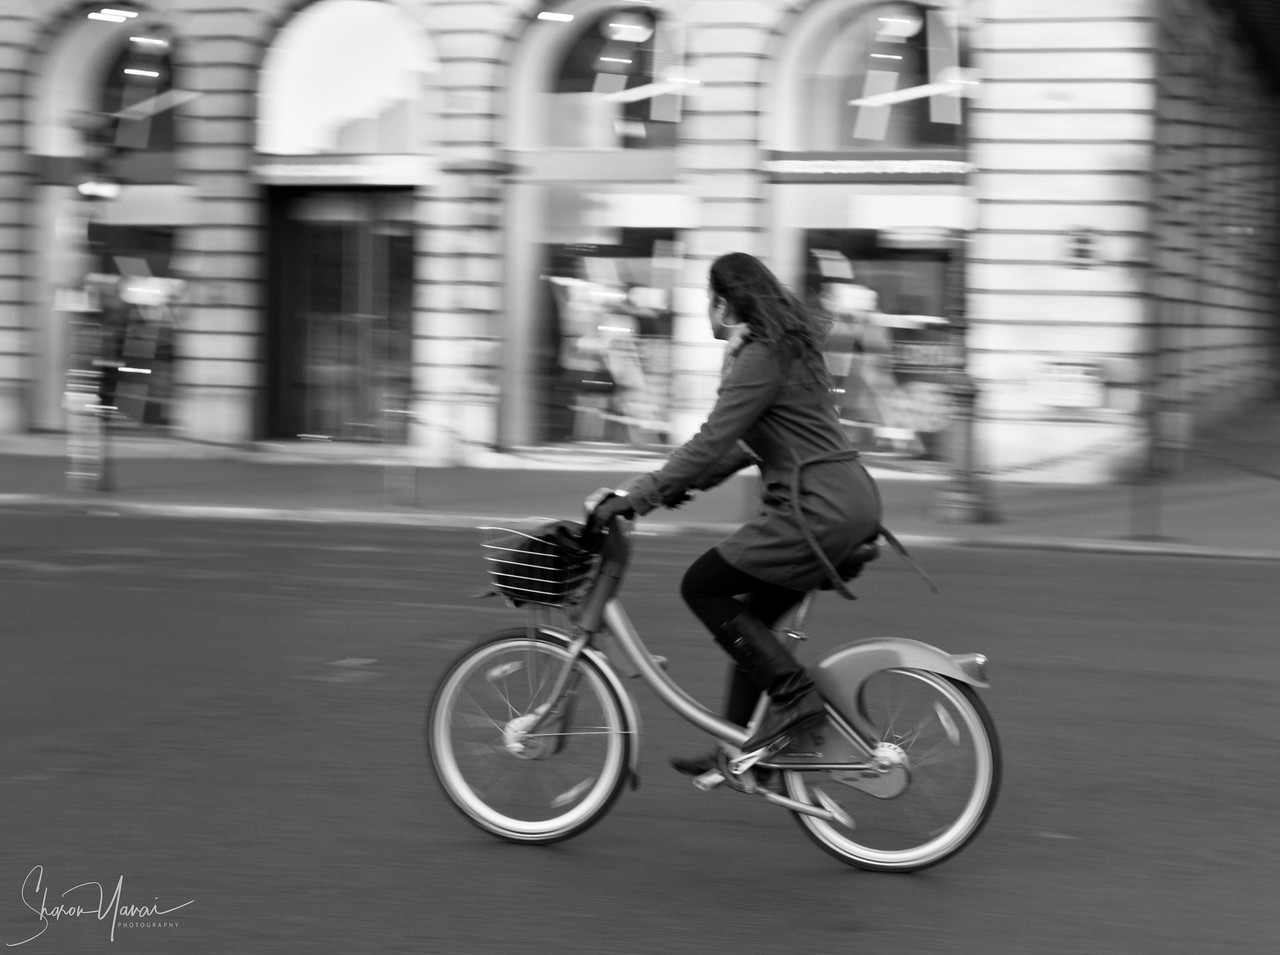 Riding bike on the streets of Paris, Paris, France